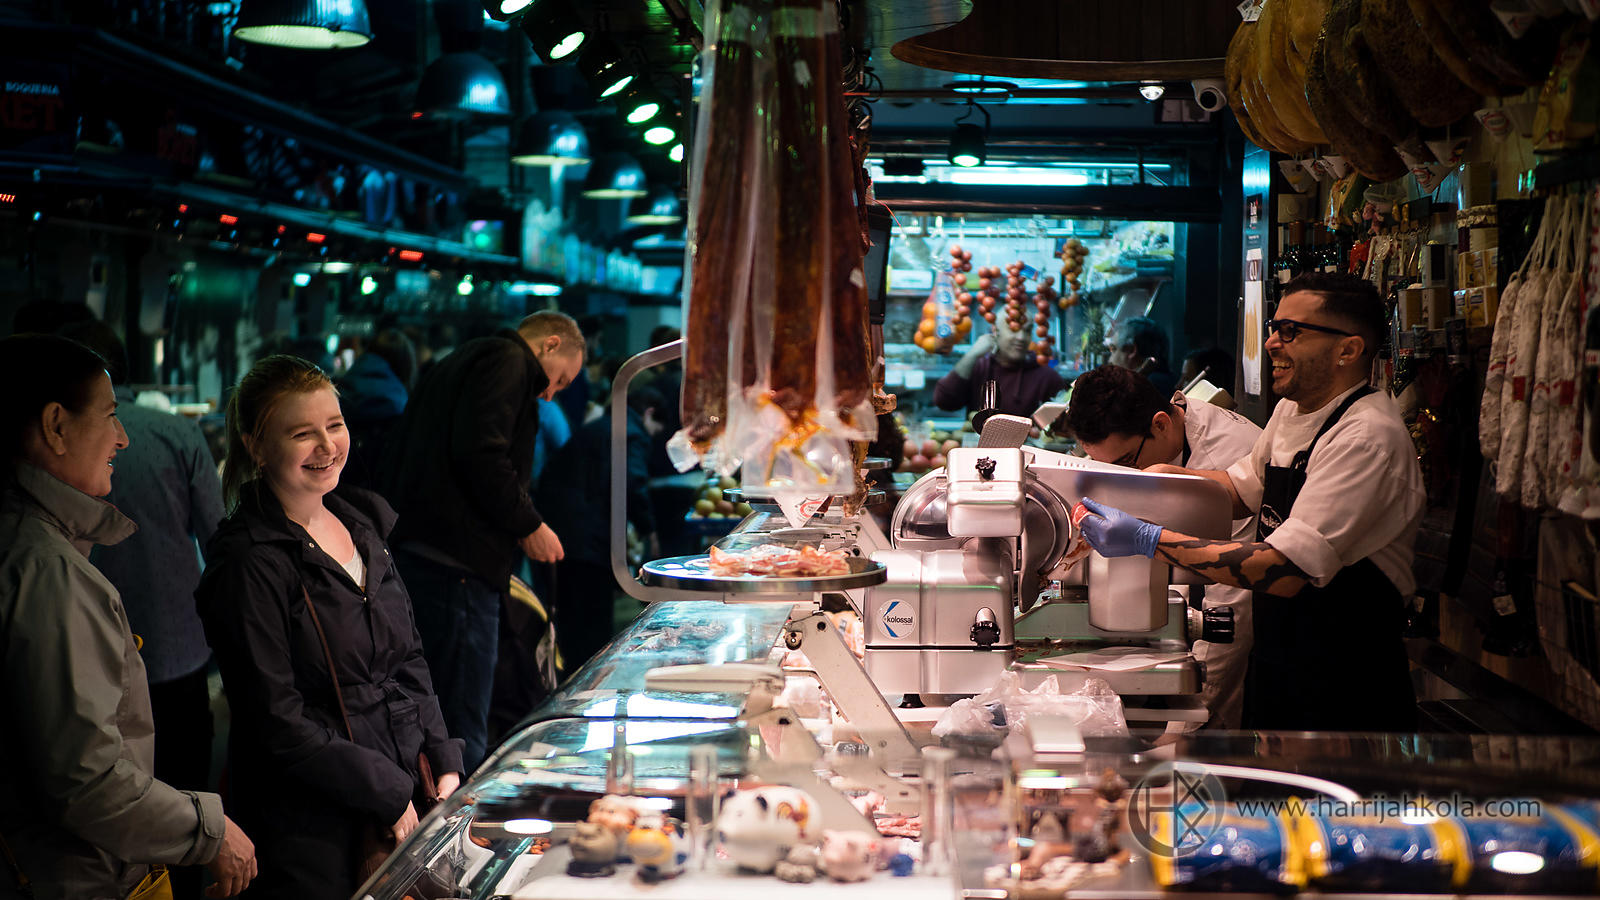 Spain_-_Barcelona_(La_Boqueria_-_Happy_Customers)